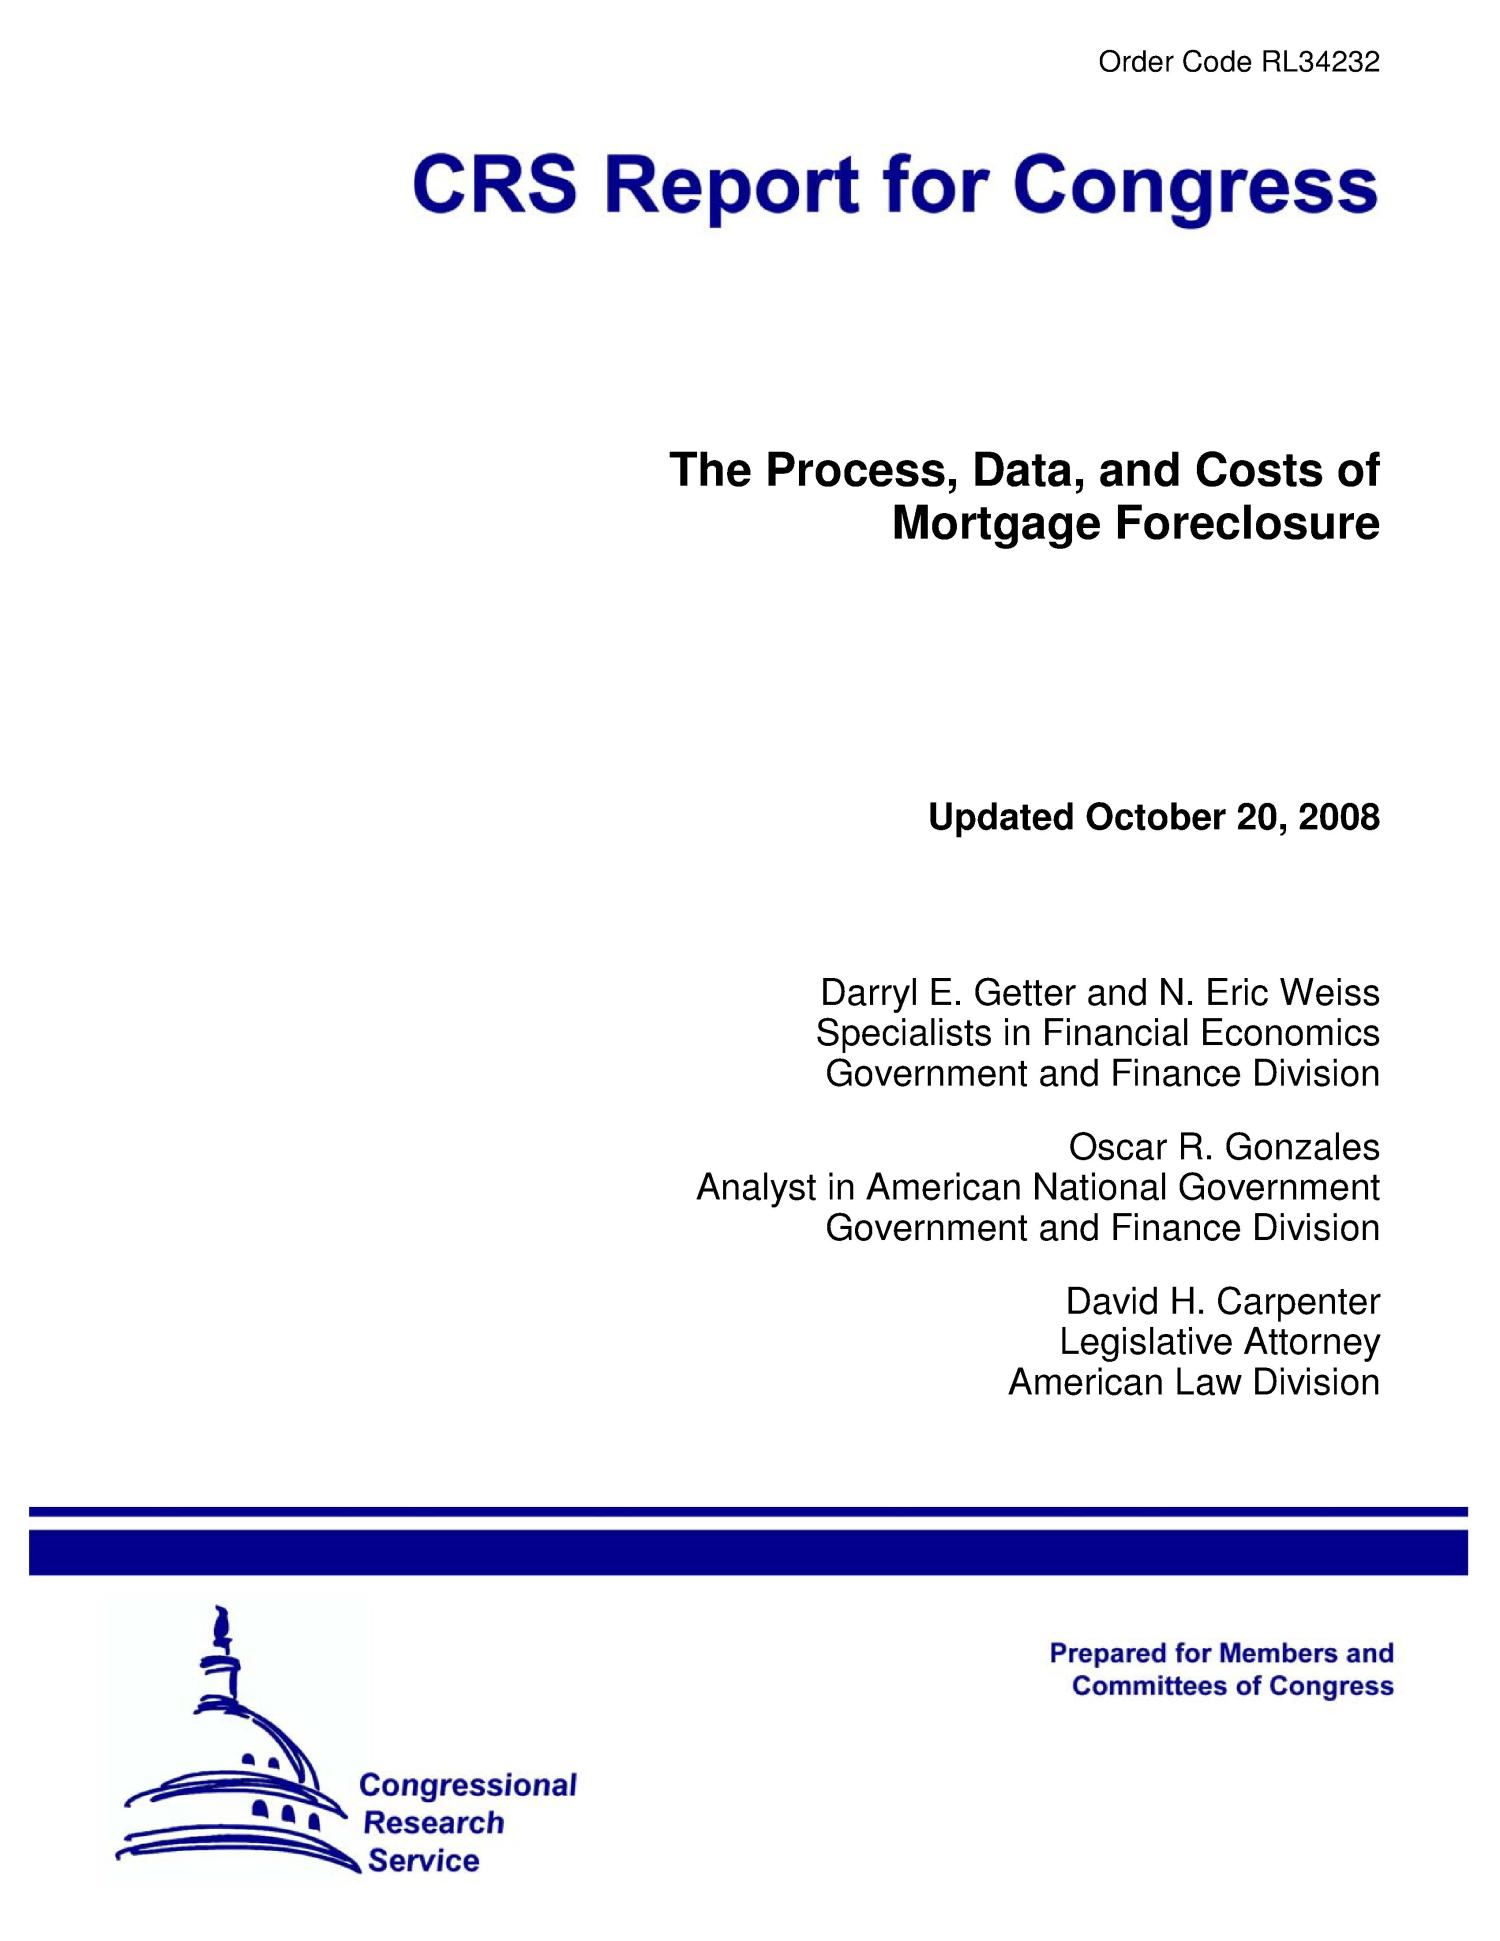 The Process, Data, and Costs of Mortgage Foreclosure